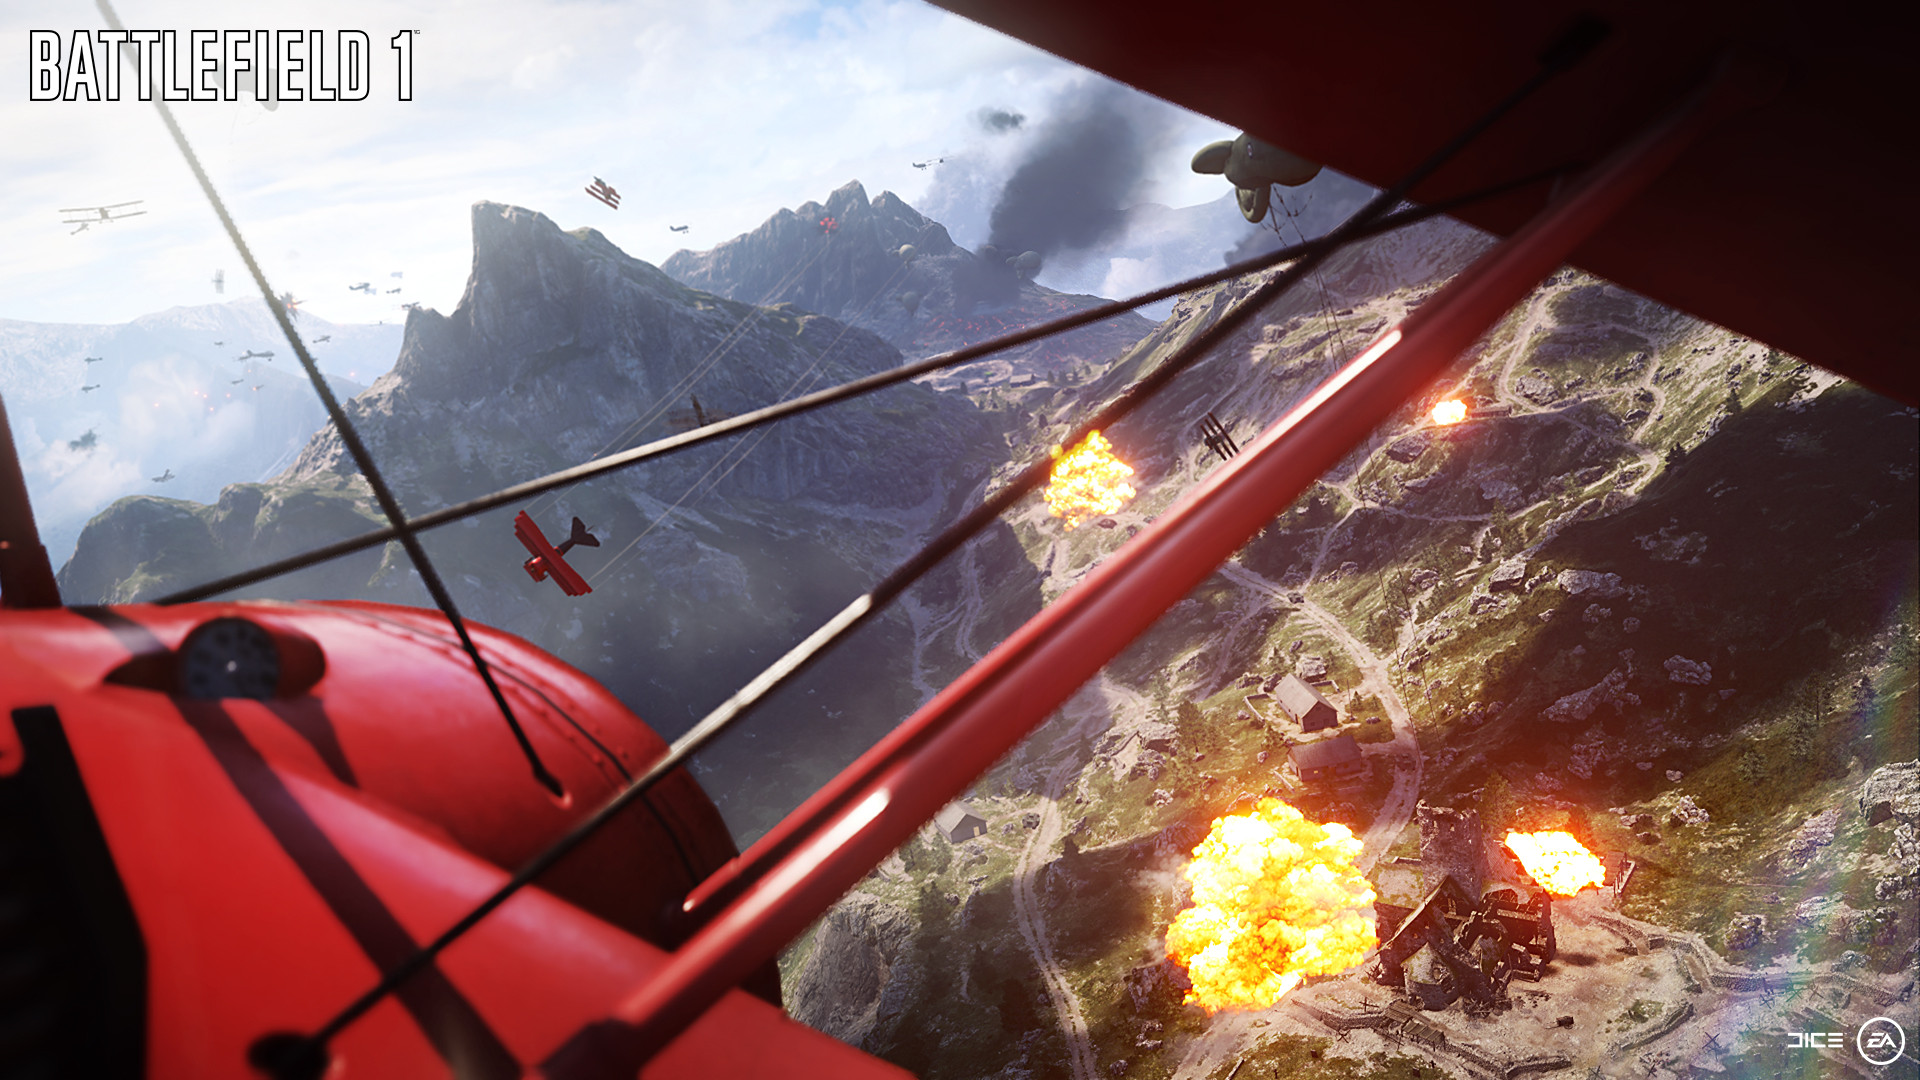 Battlefield 1 supporta su PC le DirectX 12